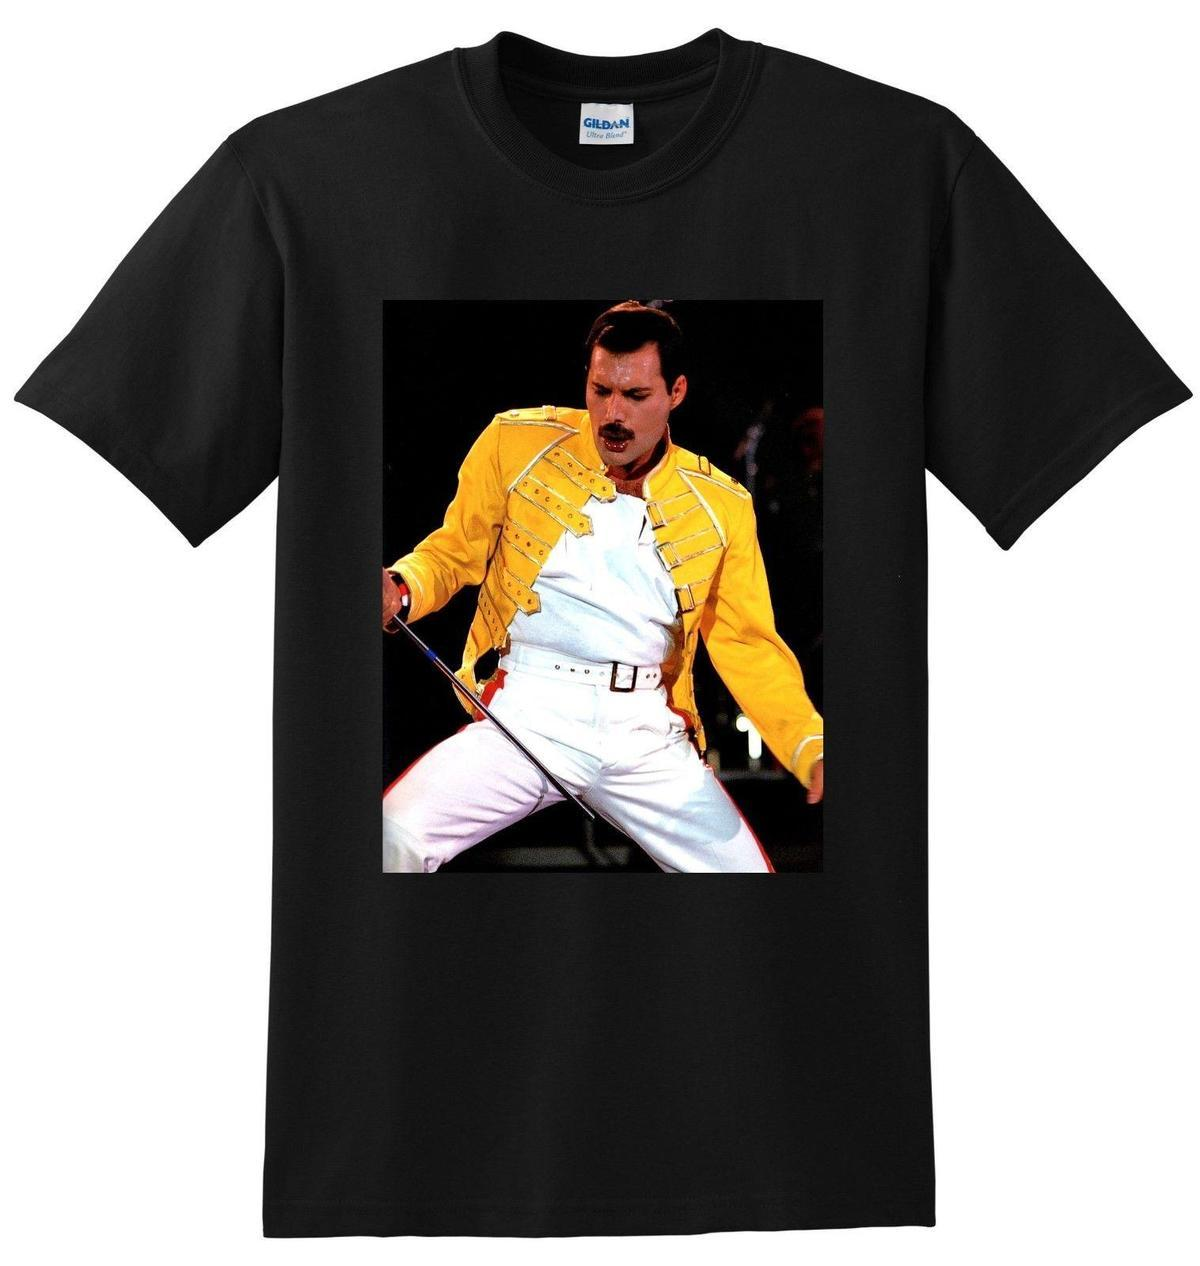 4c243d1d Freddie Mercury Tshirt,British Singer, Free Delivery Buy Cool T Shirts  Funky Tee Shirts From Zhangjingxin39, $15.53| DHgate.Com